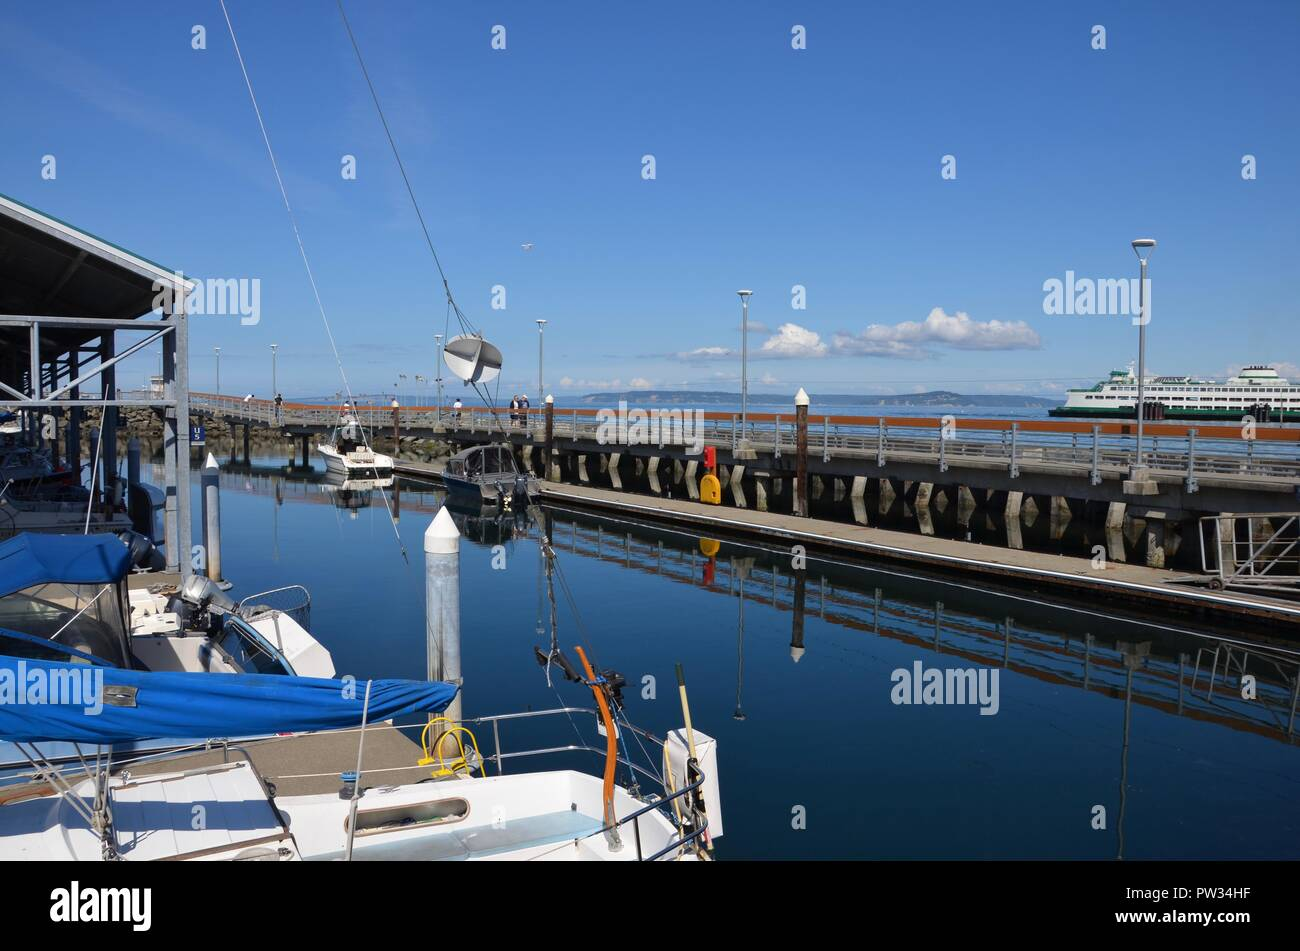 Harbor of Edmonds in Washington state, Pacific coast, fishing, boats, state ferry route, September, blue sky, cloudy, sunny - Stock Image